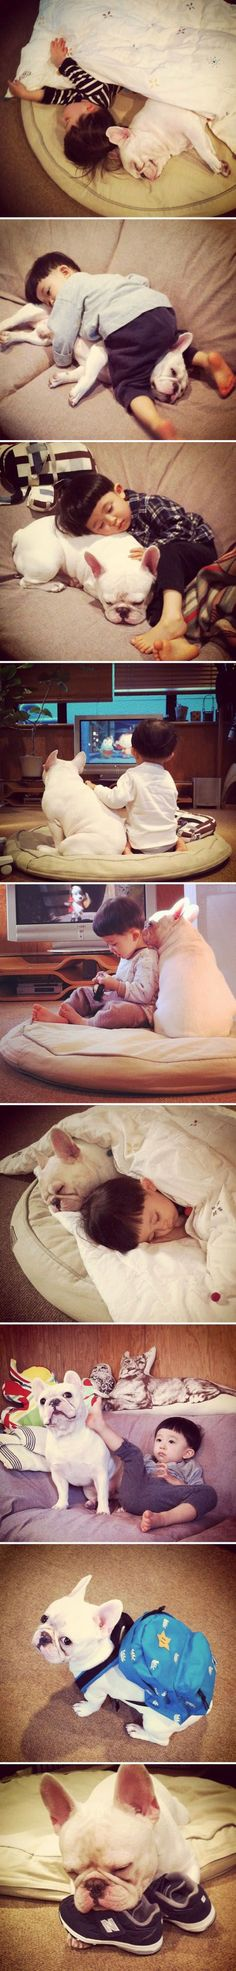 The Sweetest Friendship.  Adorable!!!!!